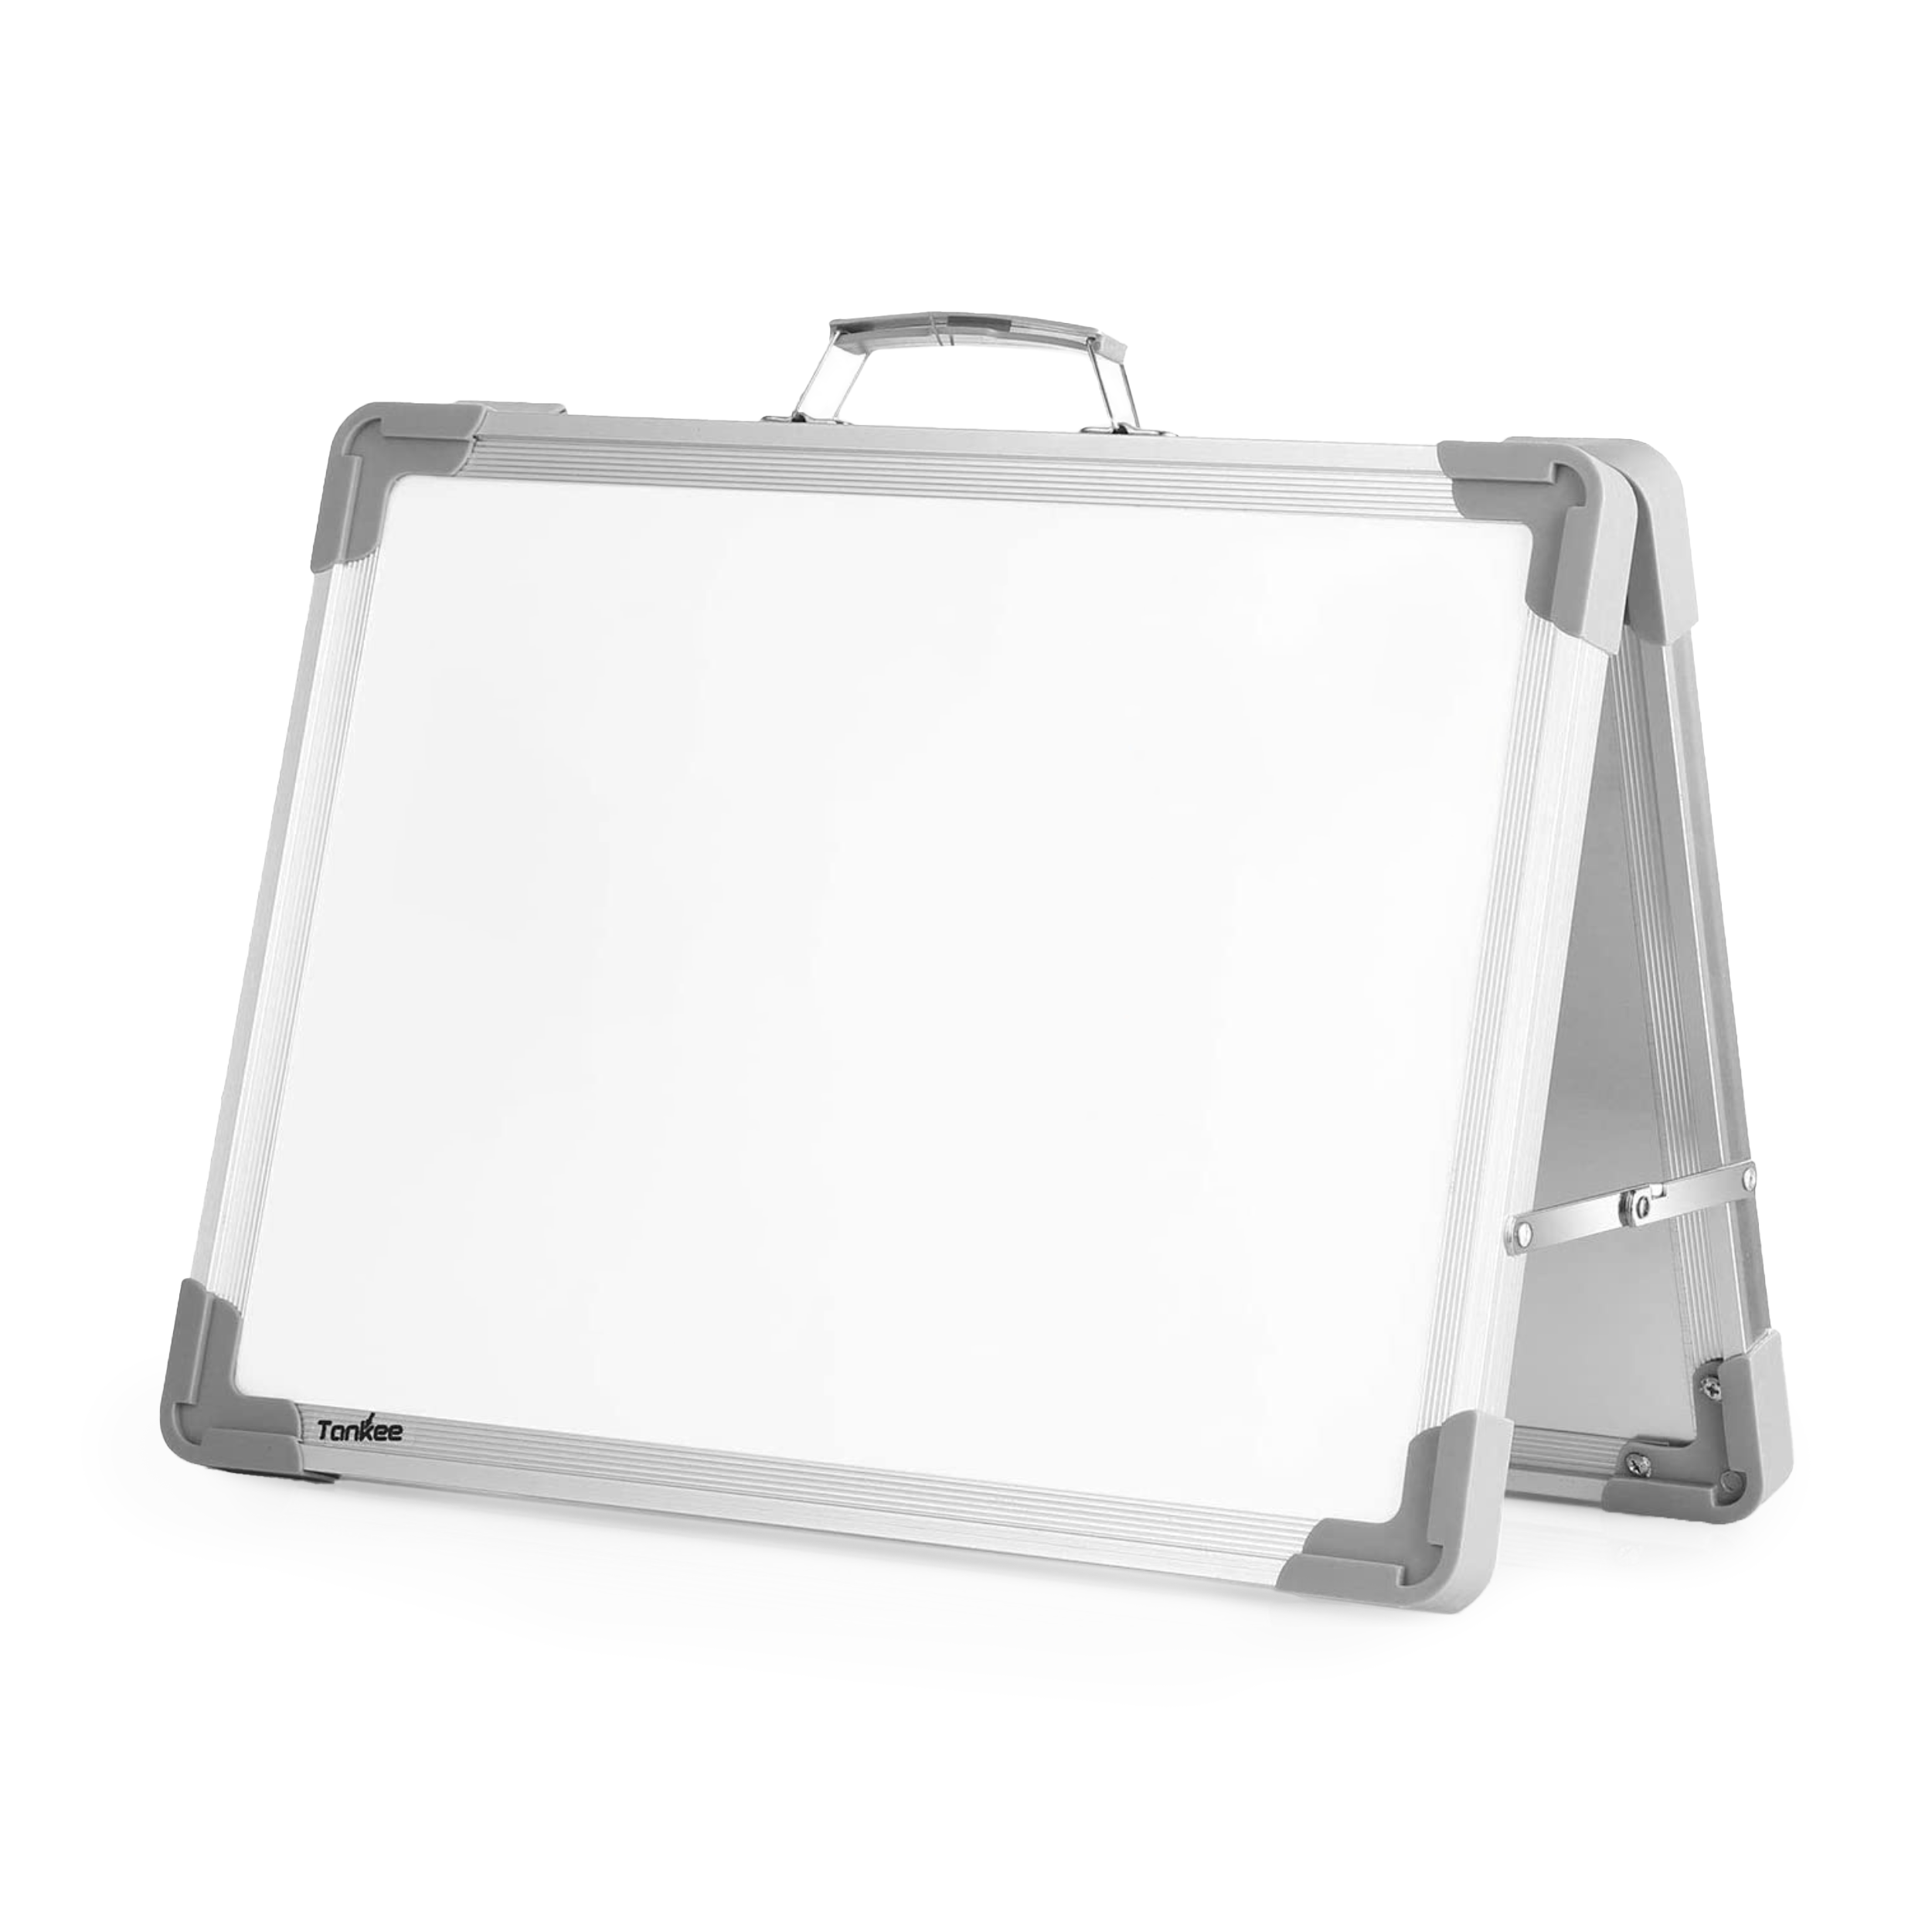 Desktop Whiteboard